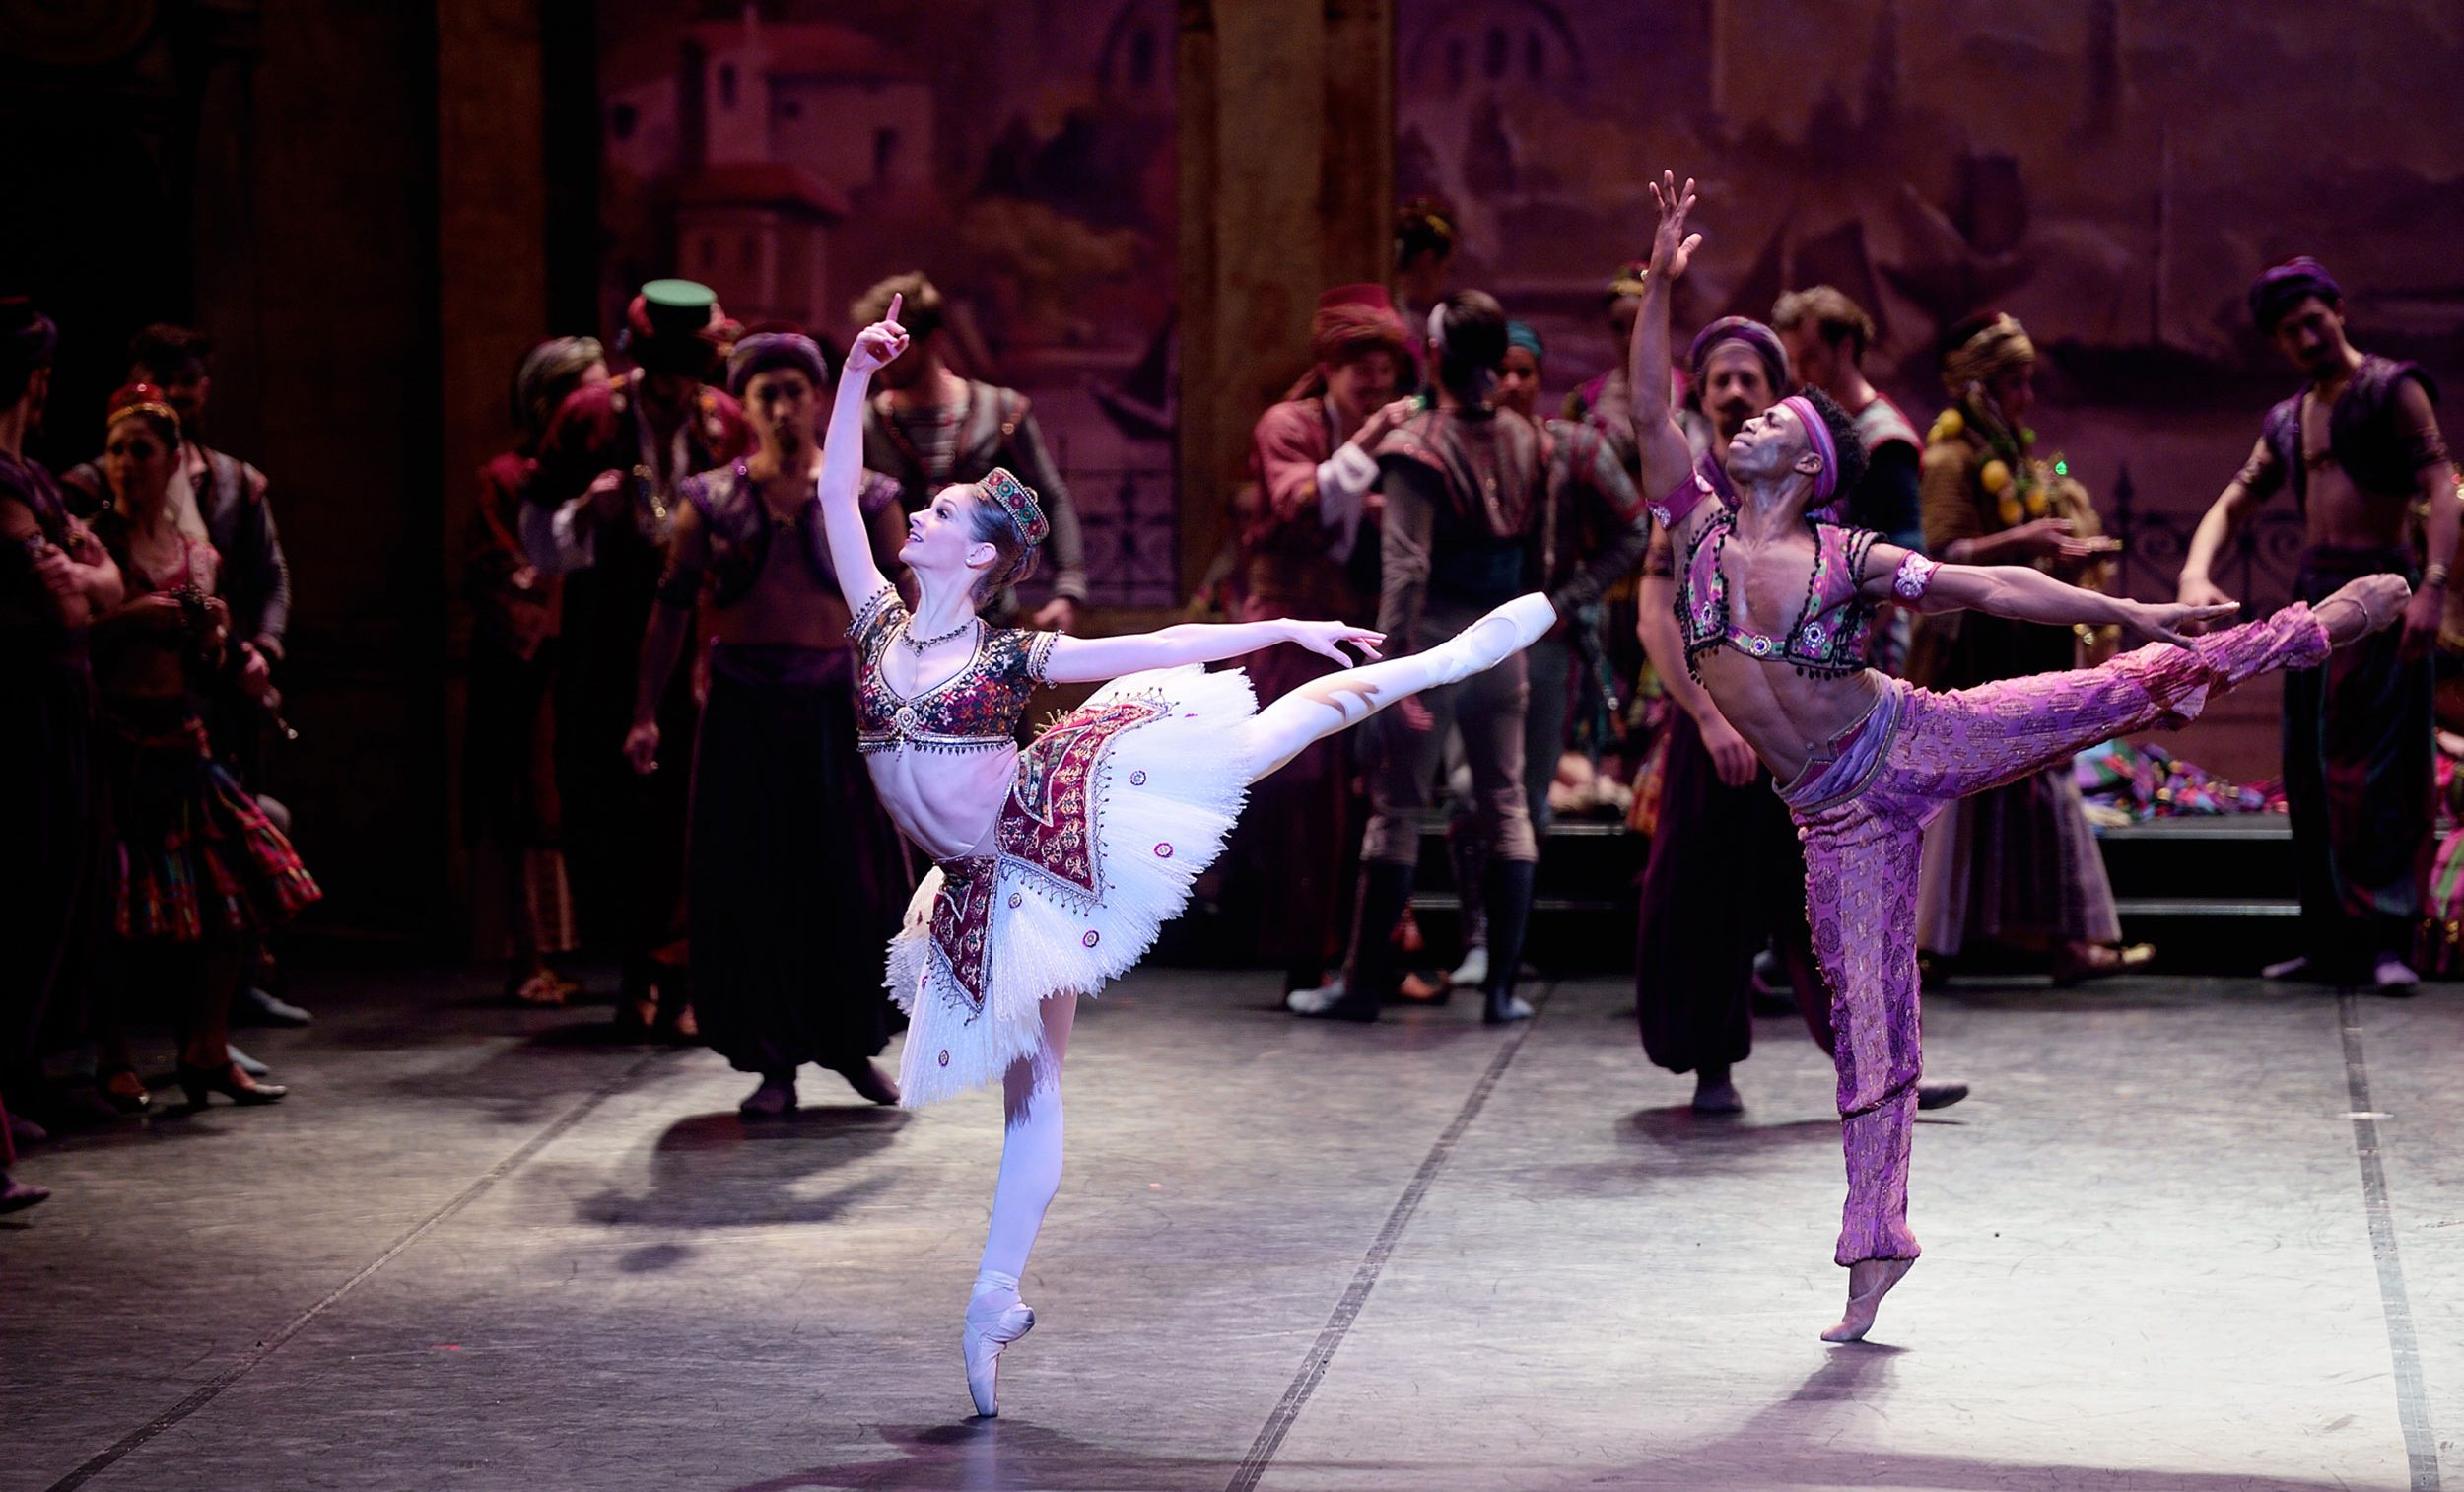 Laurretta Summerscales as Gulnare, and Brooklyn Mack as Lankendem in Le Corsaire © Laurent Liotardo